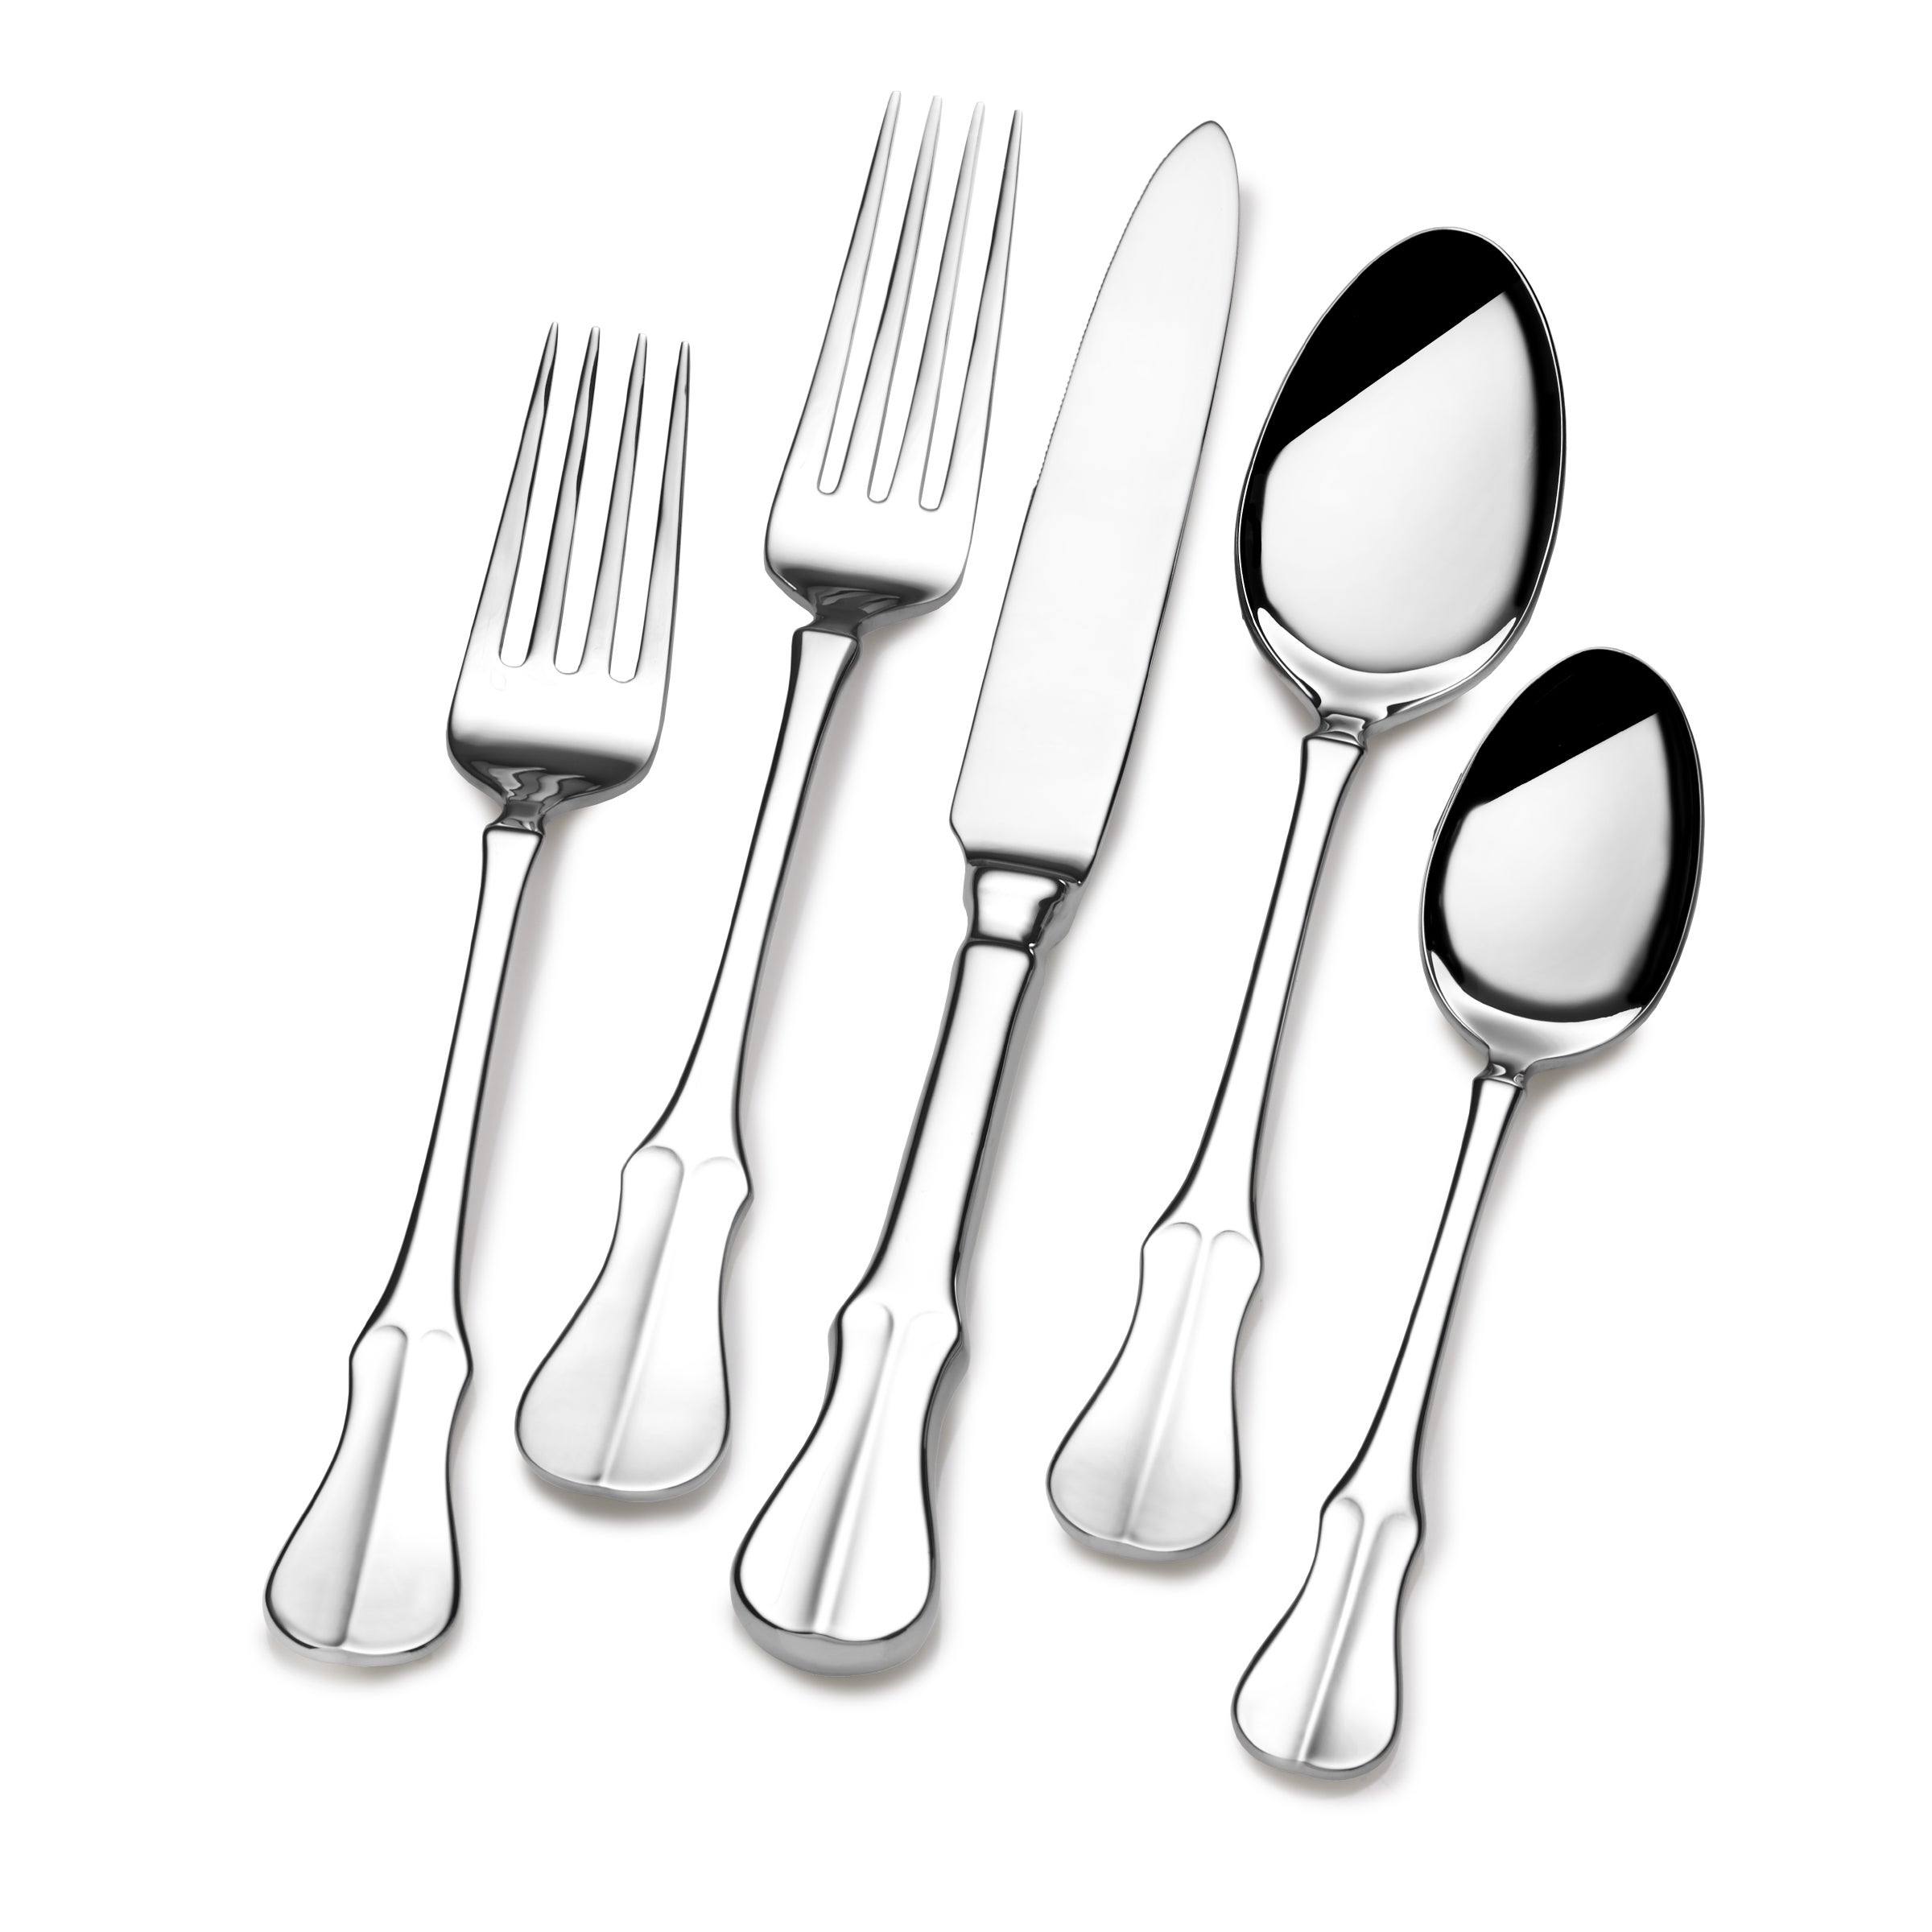 Shop Wallace Elite Curator 1810 Stainless Steel 65 Piece Flatware